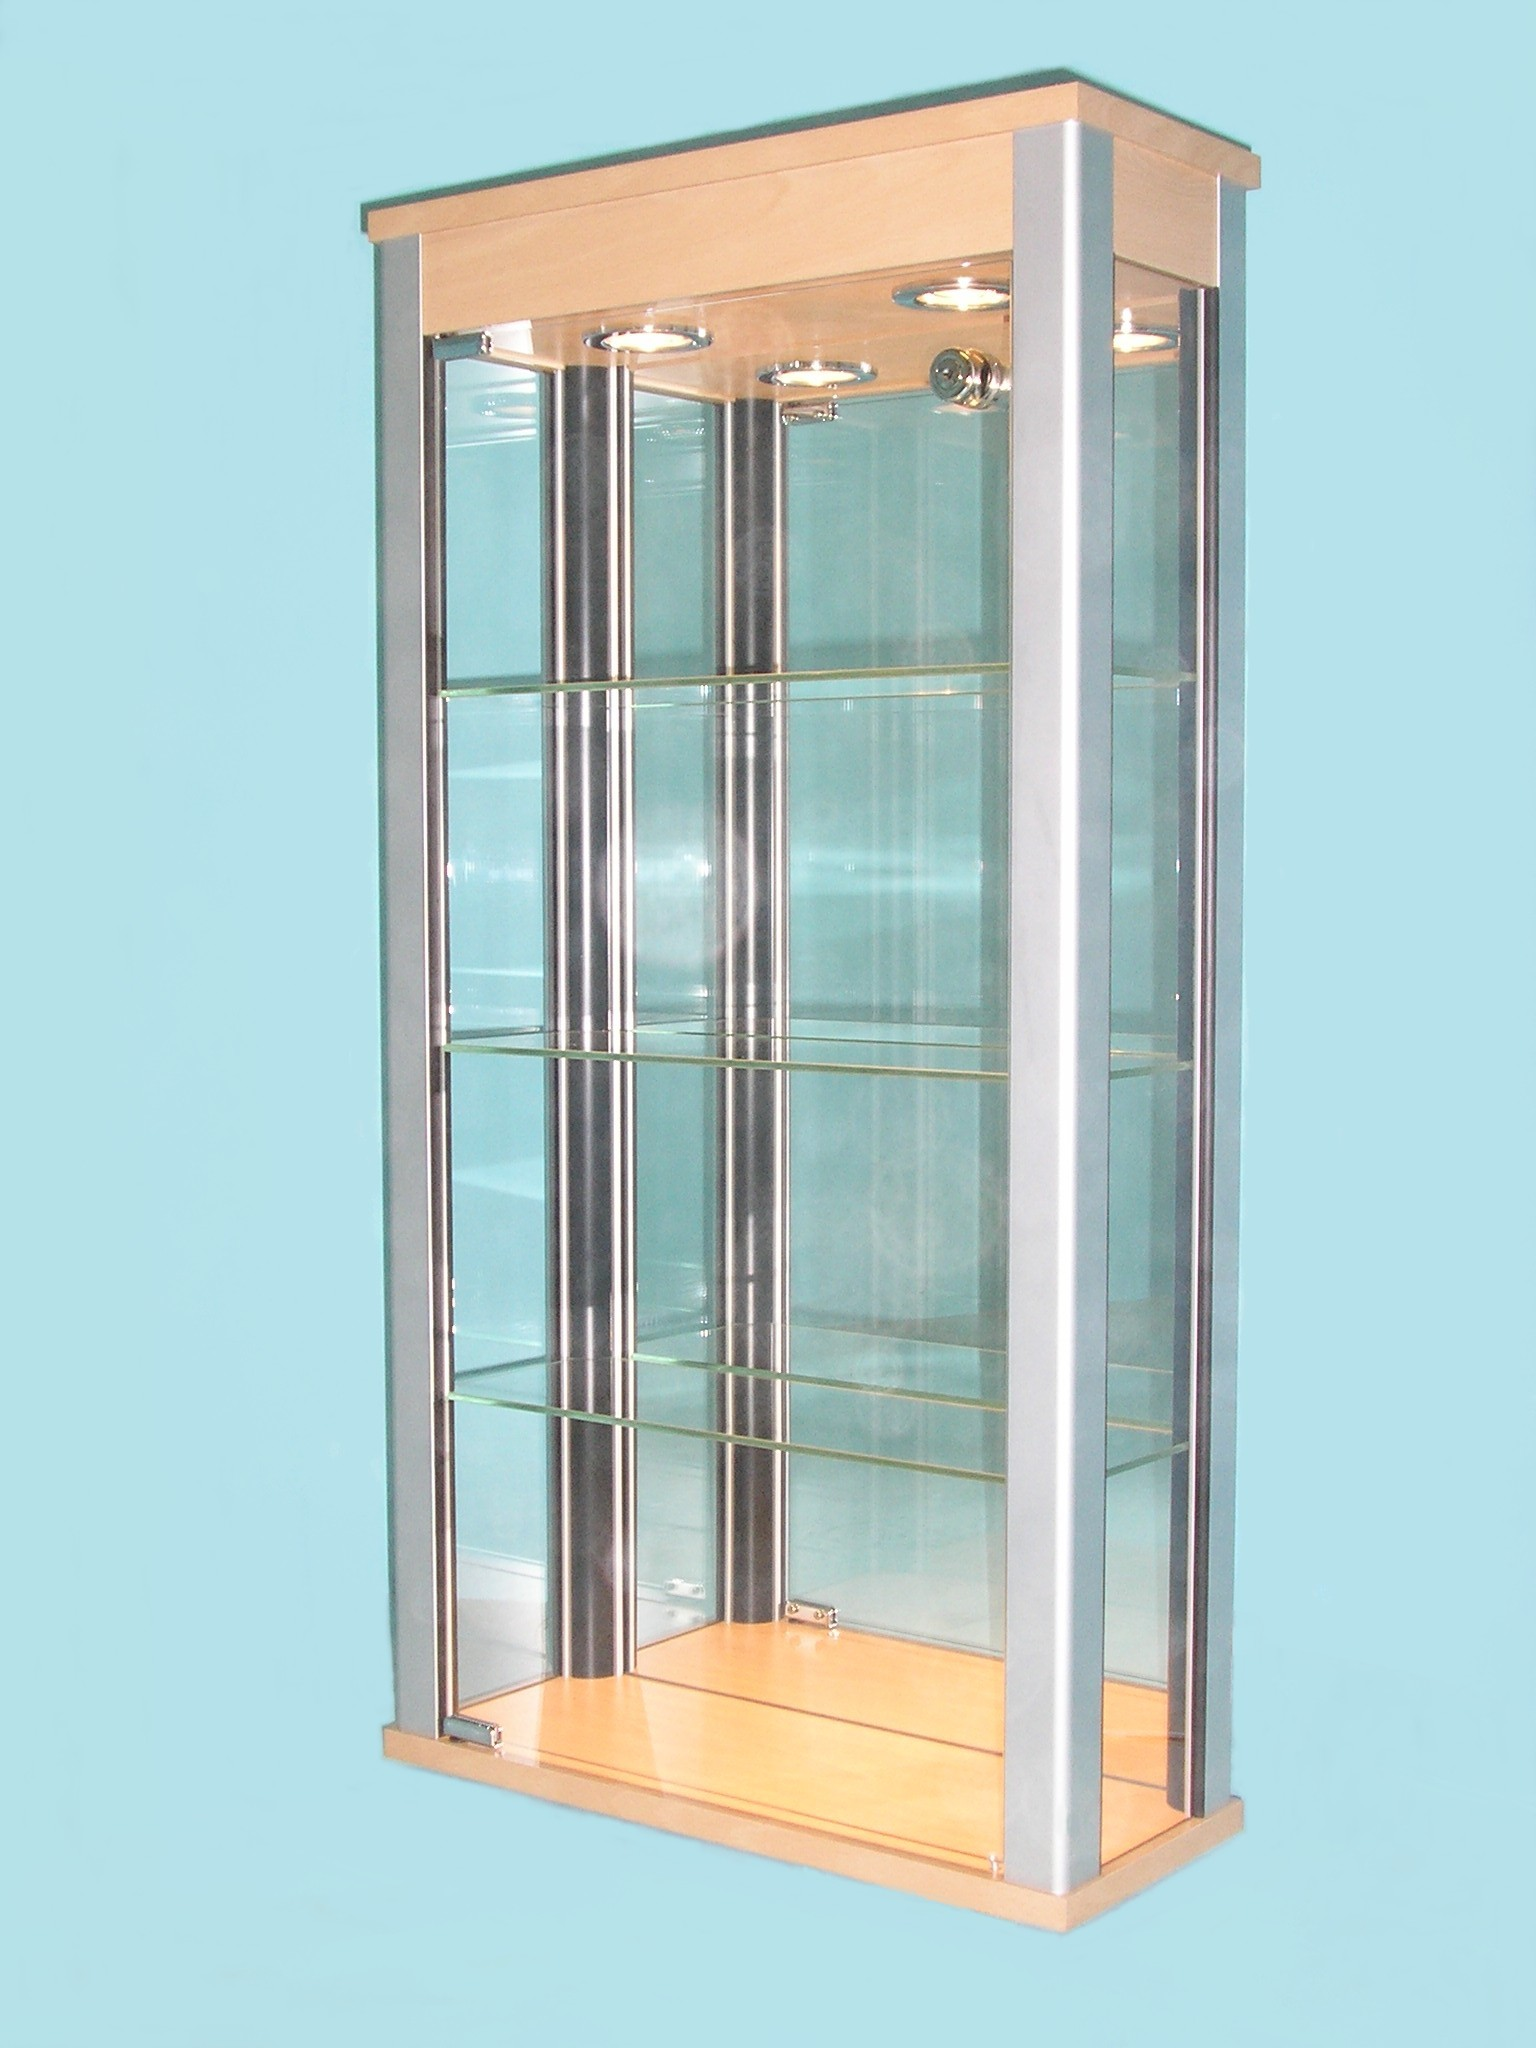 Wall Mounted Glass Display Cabinets Designex Cabinets